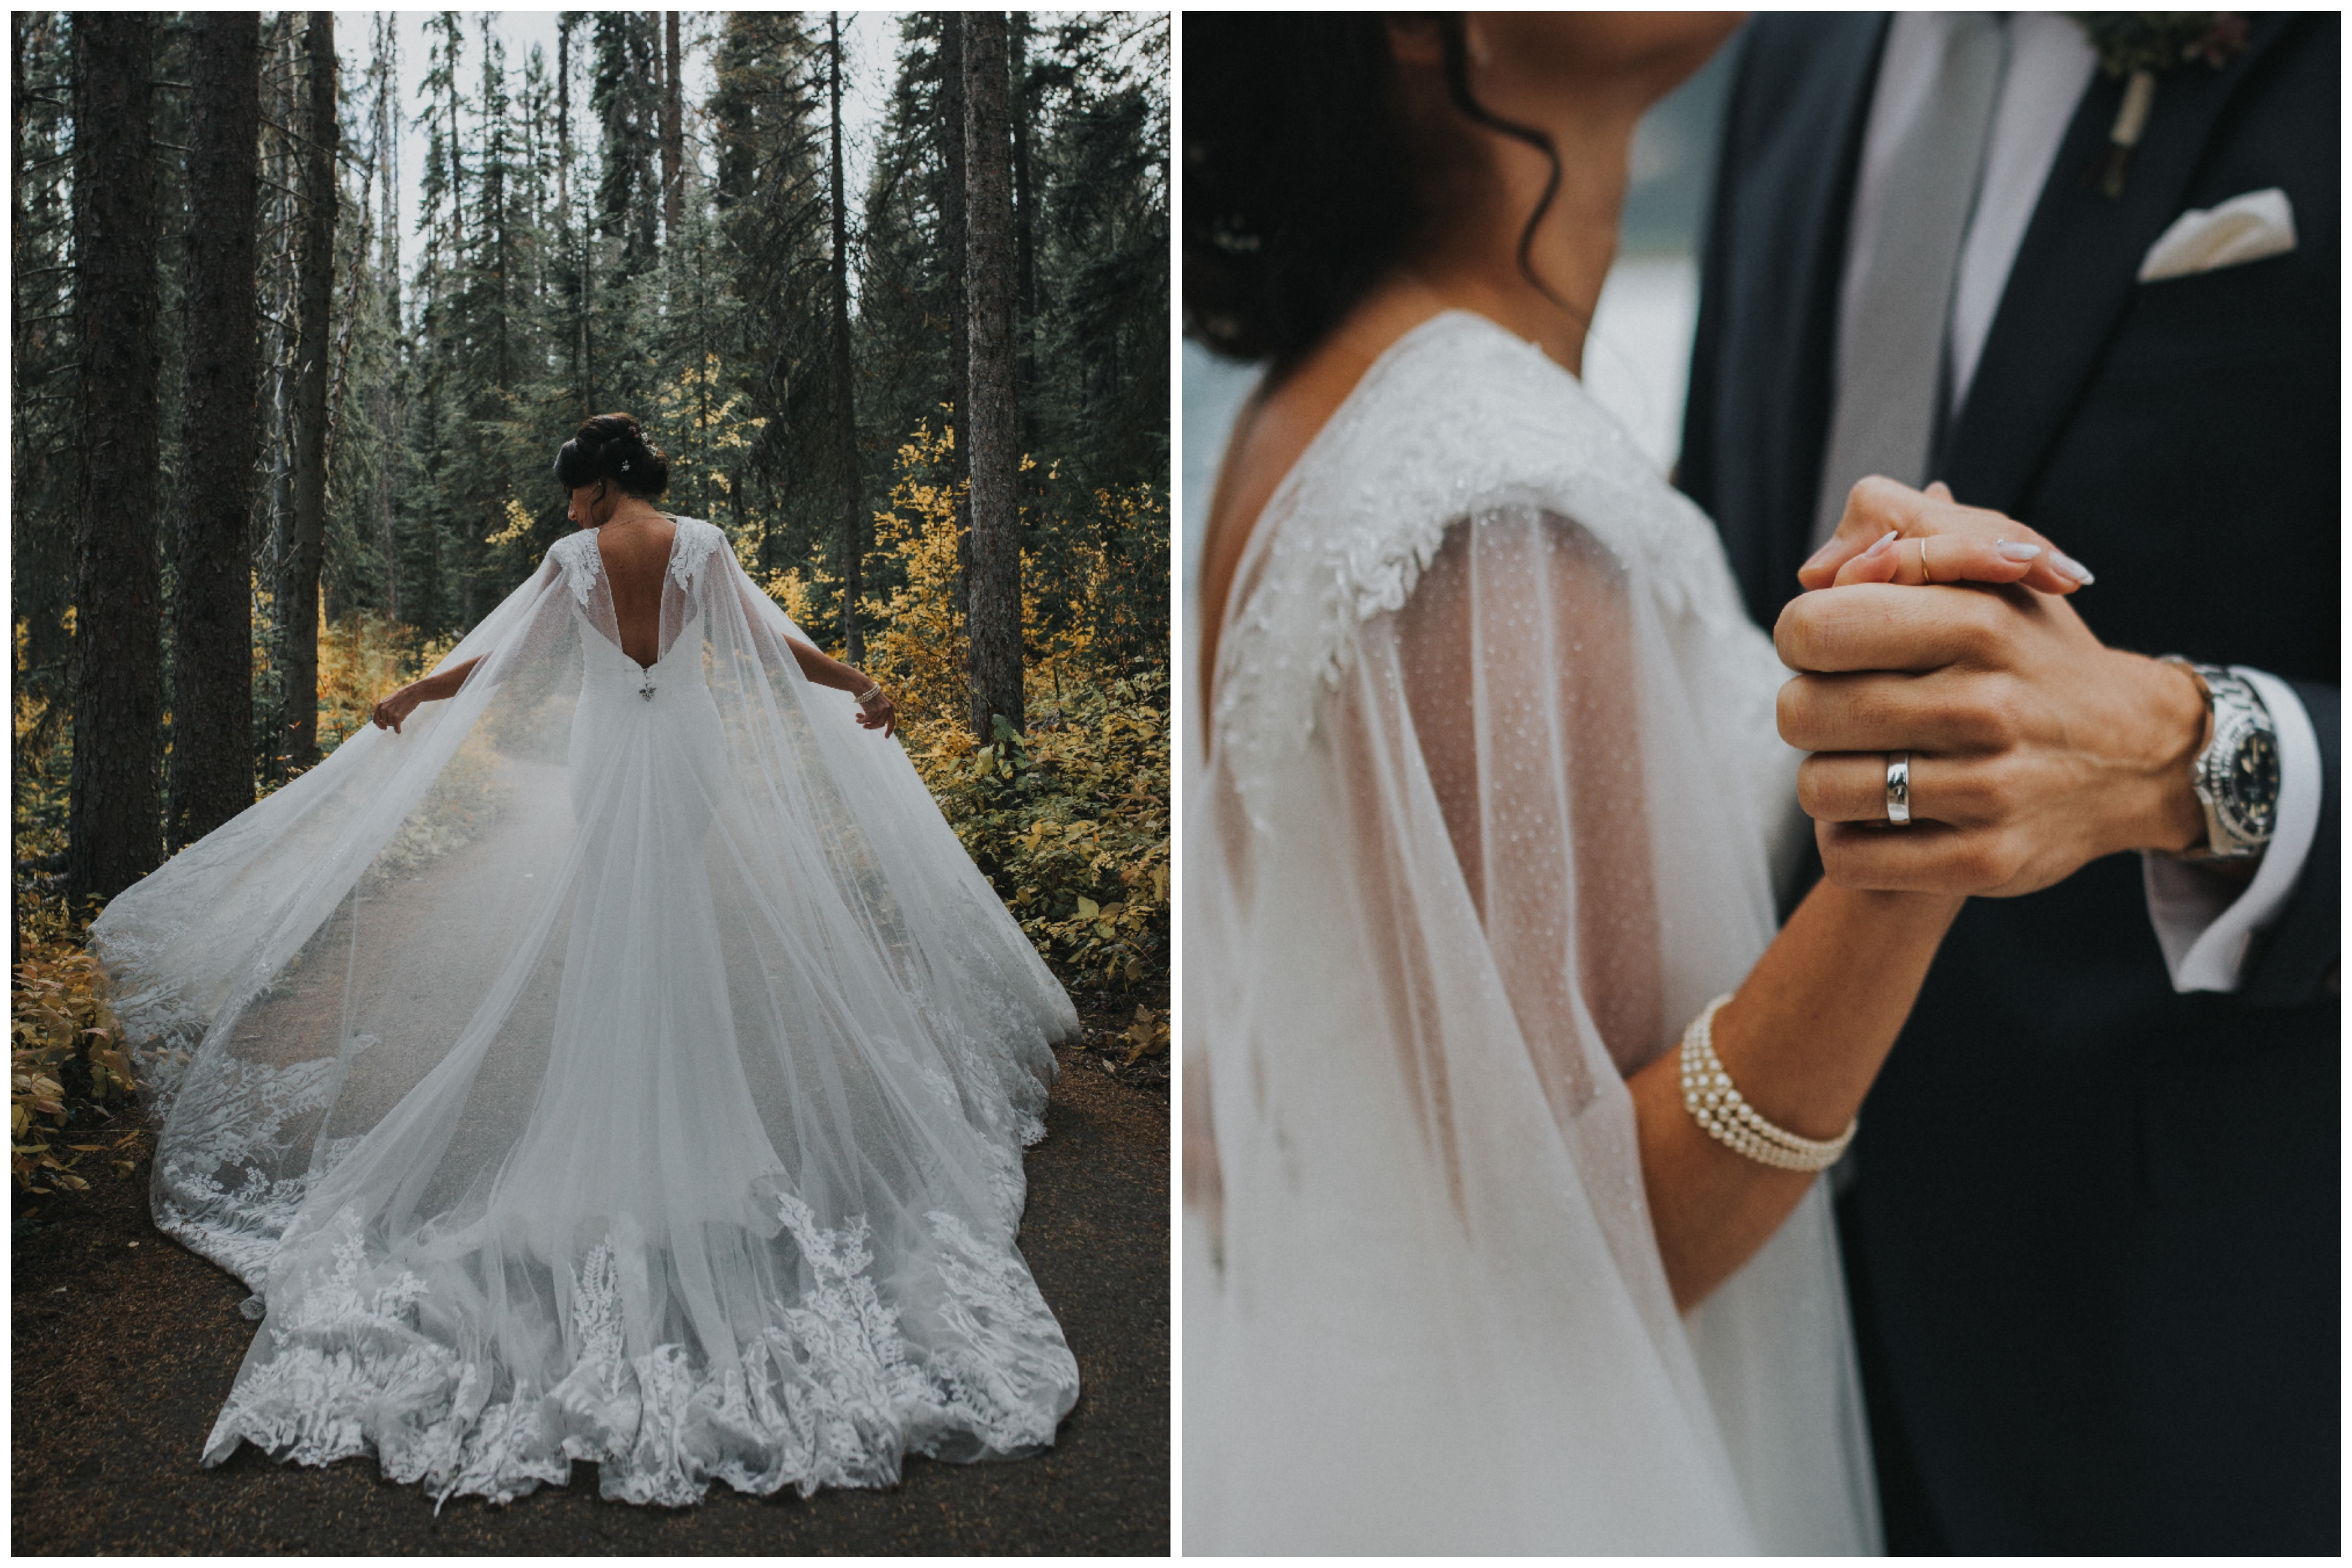 Isabelle chose a silver sparkle tulle cape with a scalloped edge